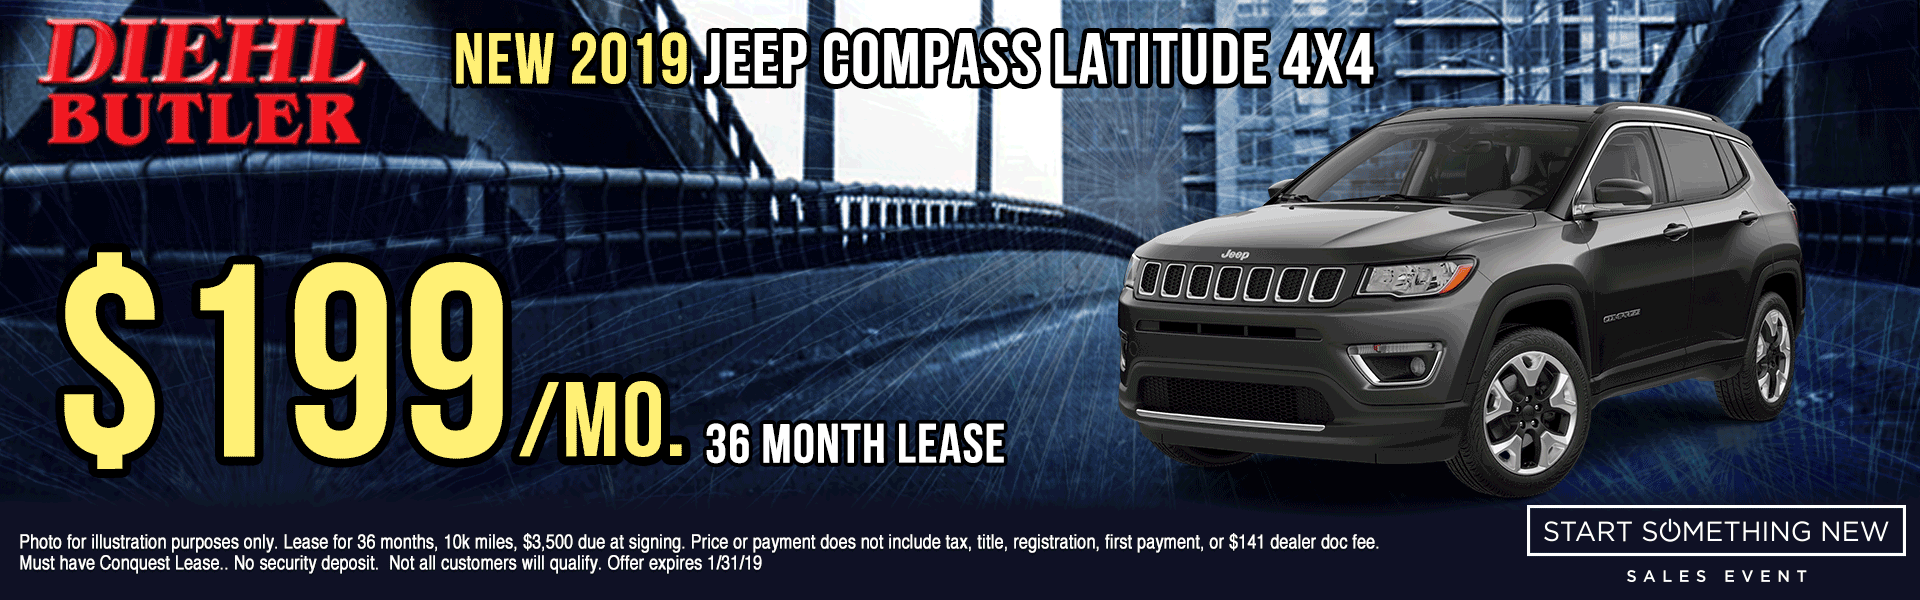 J190911-2019-JEEP-COMPASS-LATITUDE-4X4 Diehl Automotive butler new vehicle specials lease specials Chrysler specials dodge specials jeep specials ram specials wrangler compass Cherokee big horn truck suv offload start something new sales event butler specials